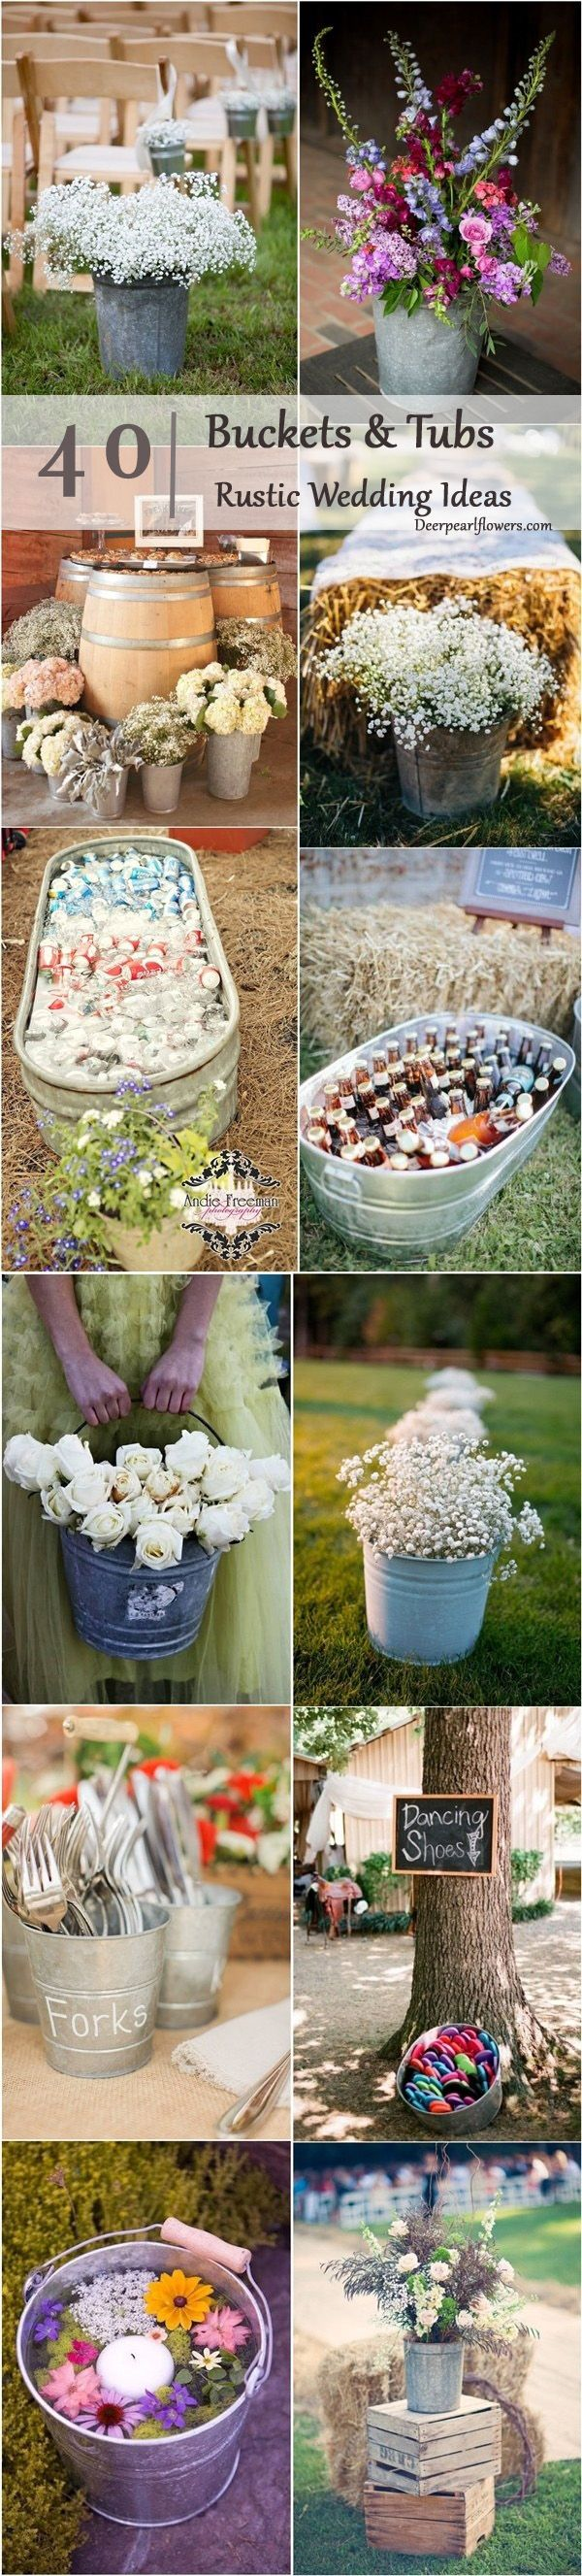 40 ways to use buckets tubs for your wedding decor rustic chic weddingscountry weddingscheap